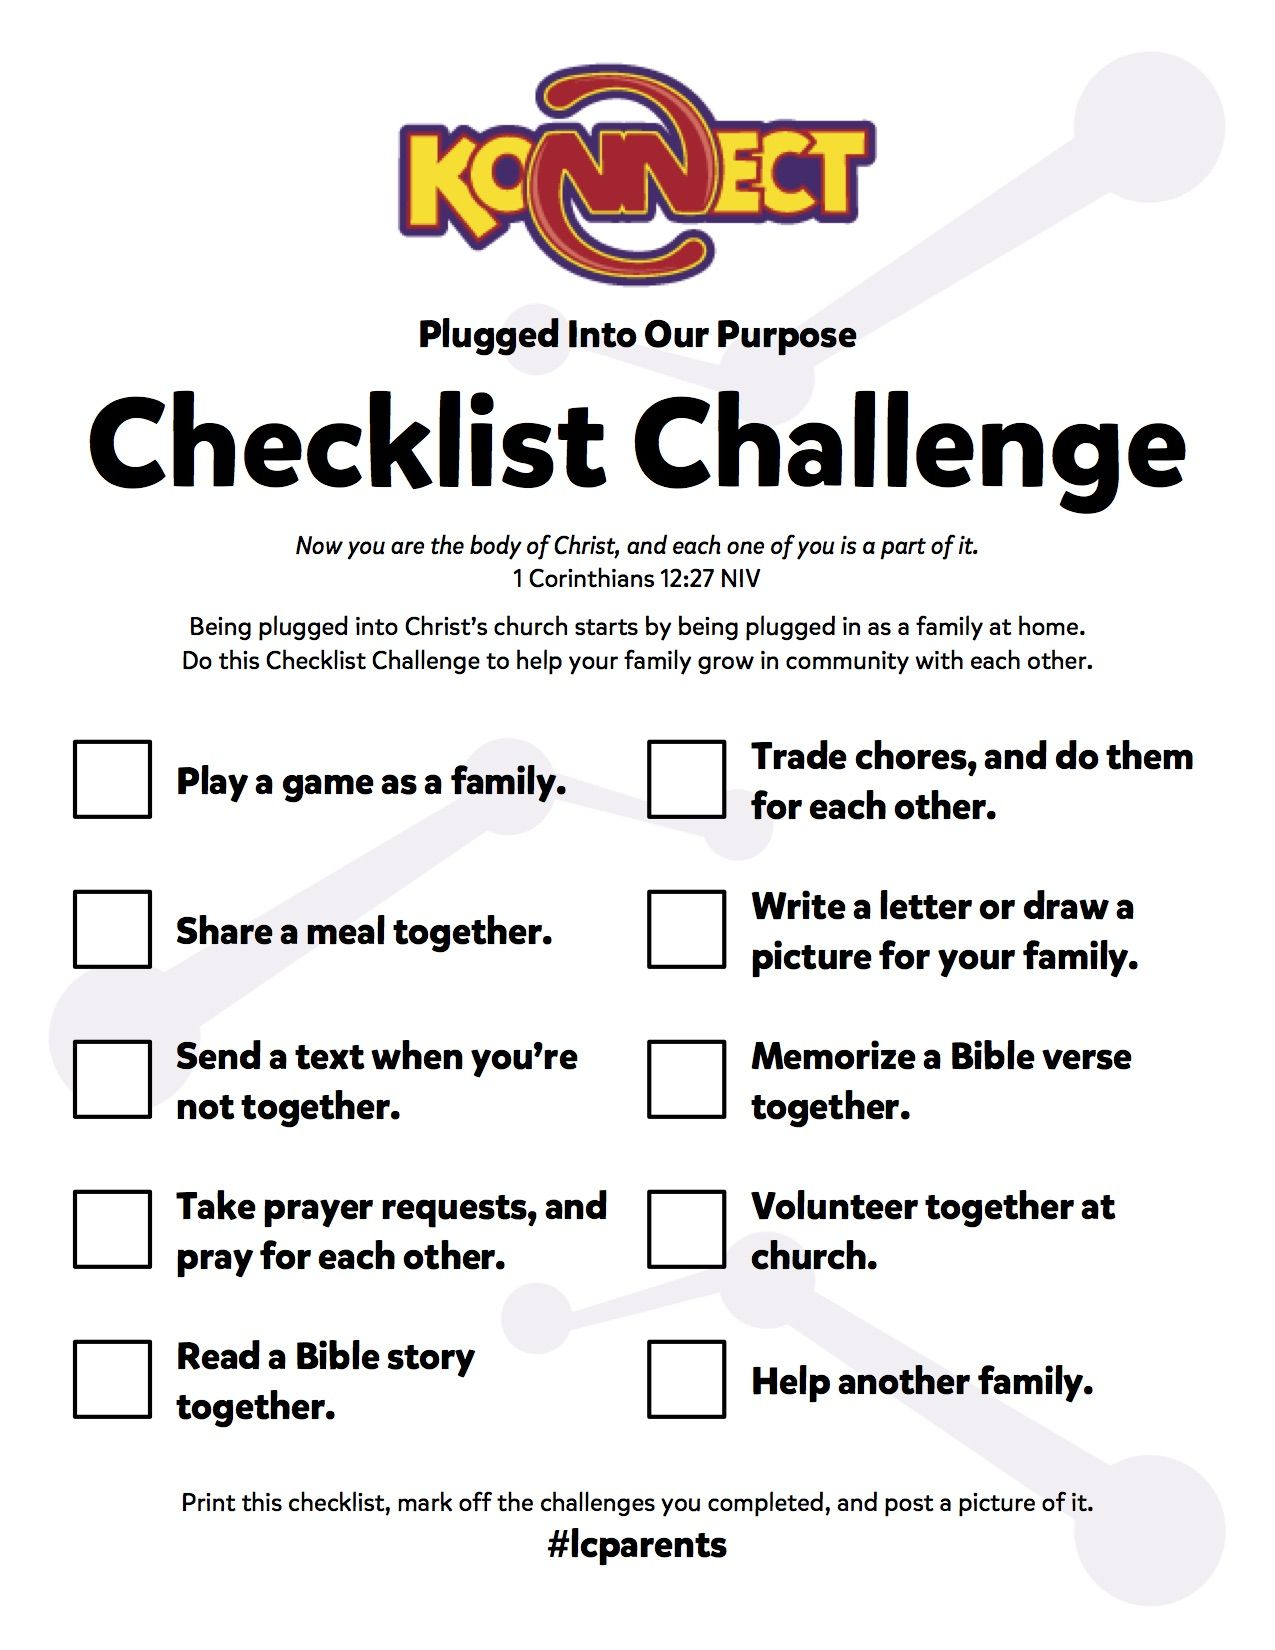 Do The Plugged Into Our Purpose Checklist Challenge To